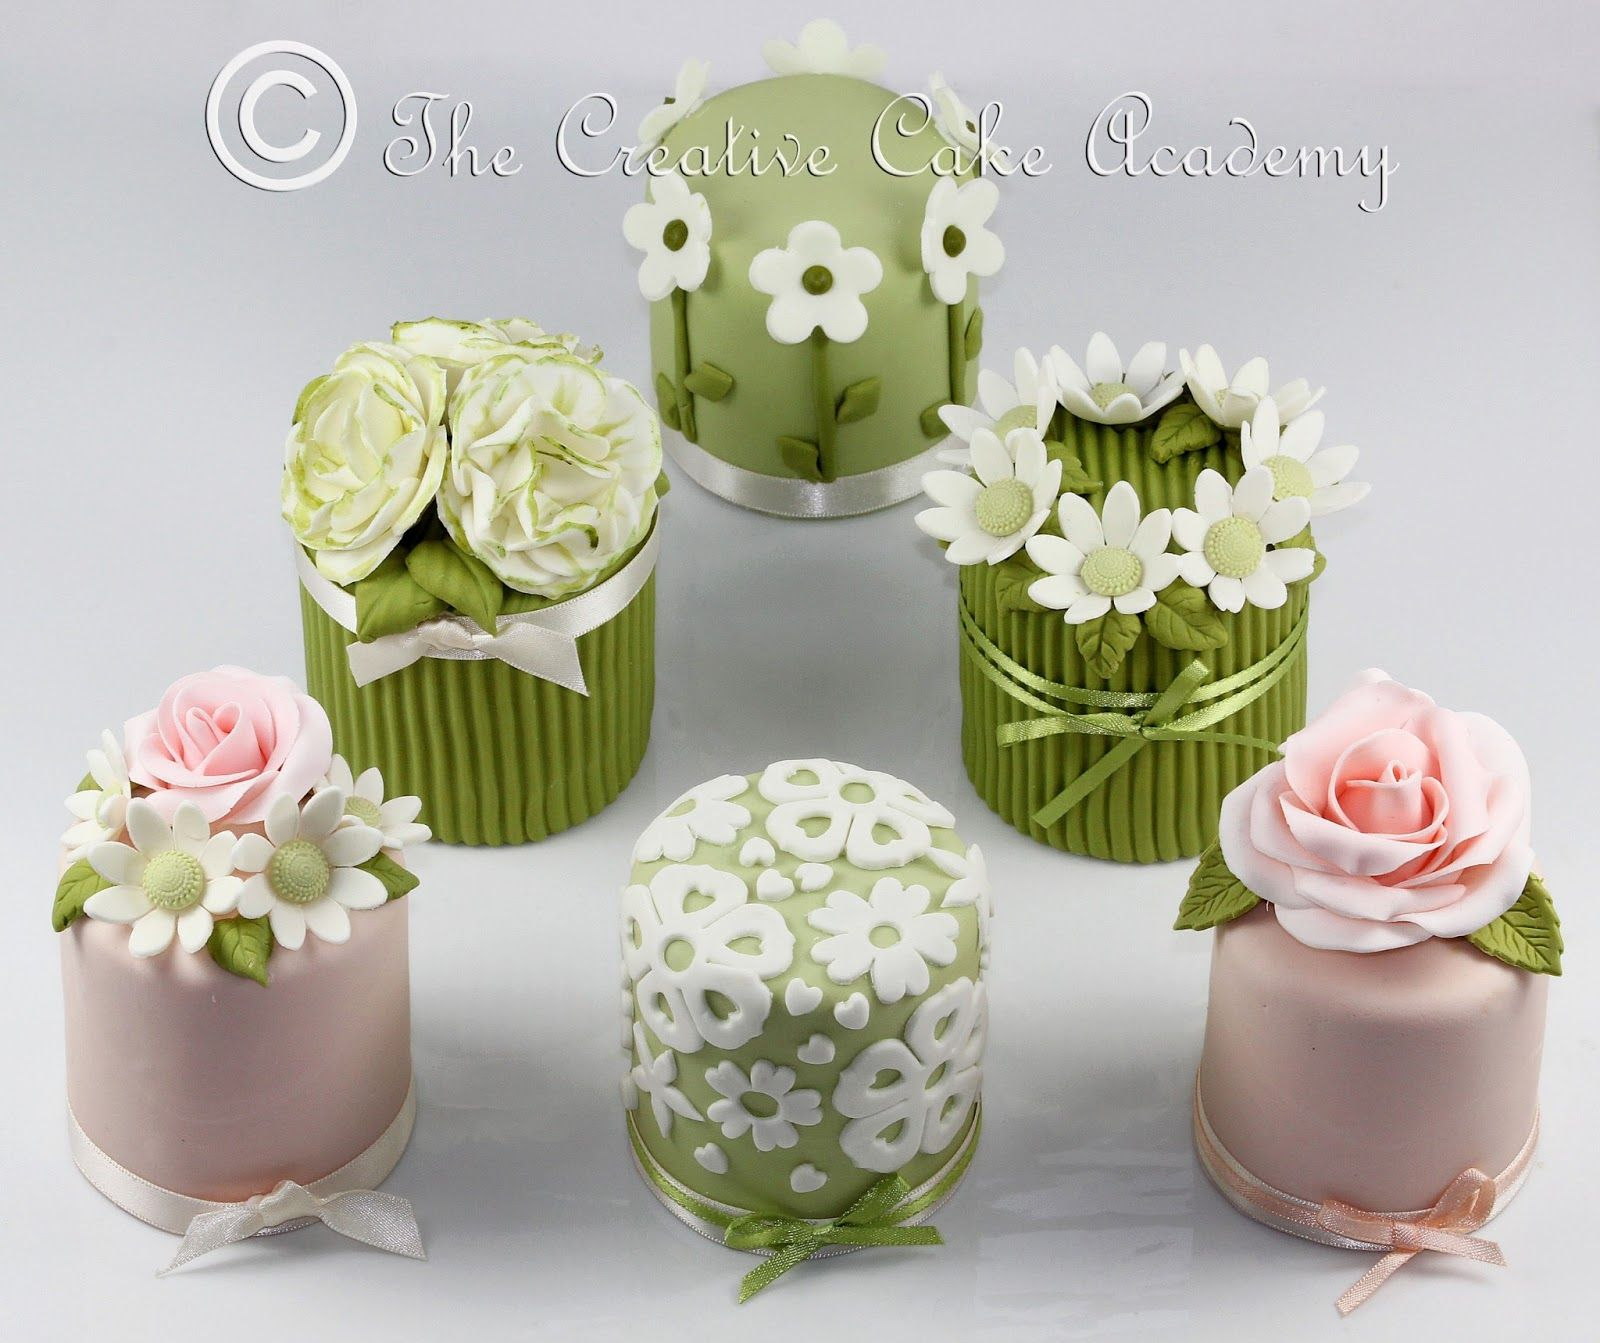 how to decorate mini wedding cakes how to decorate mini cakes the creative cake academy 15677